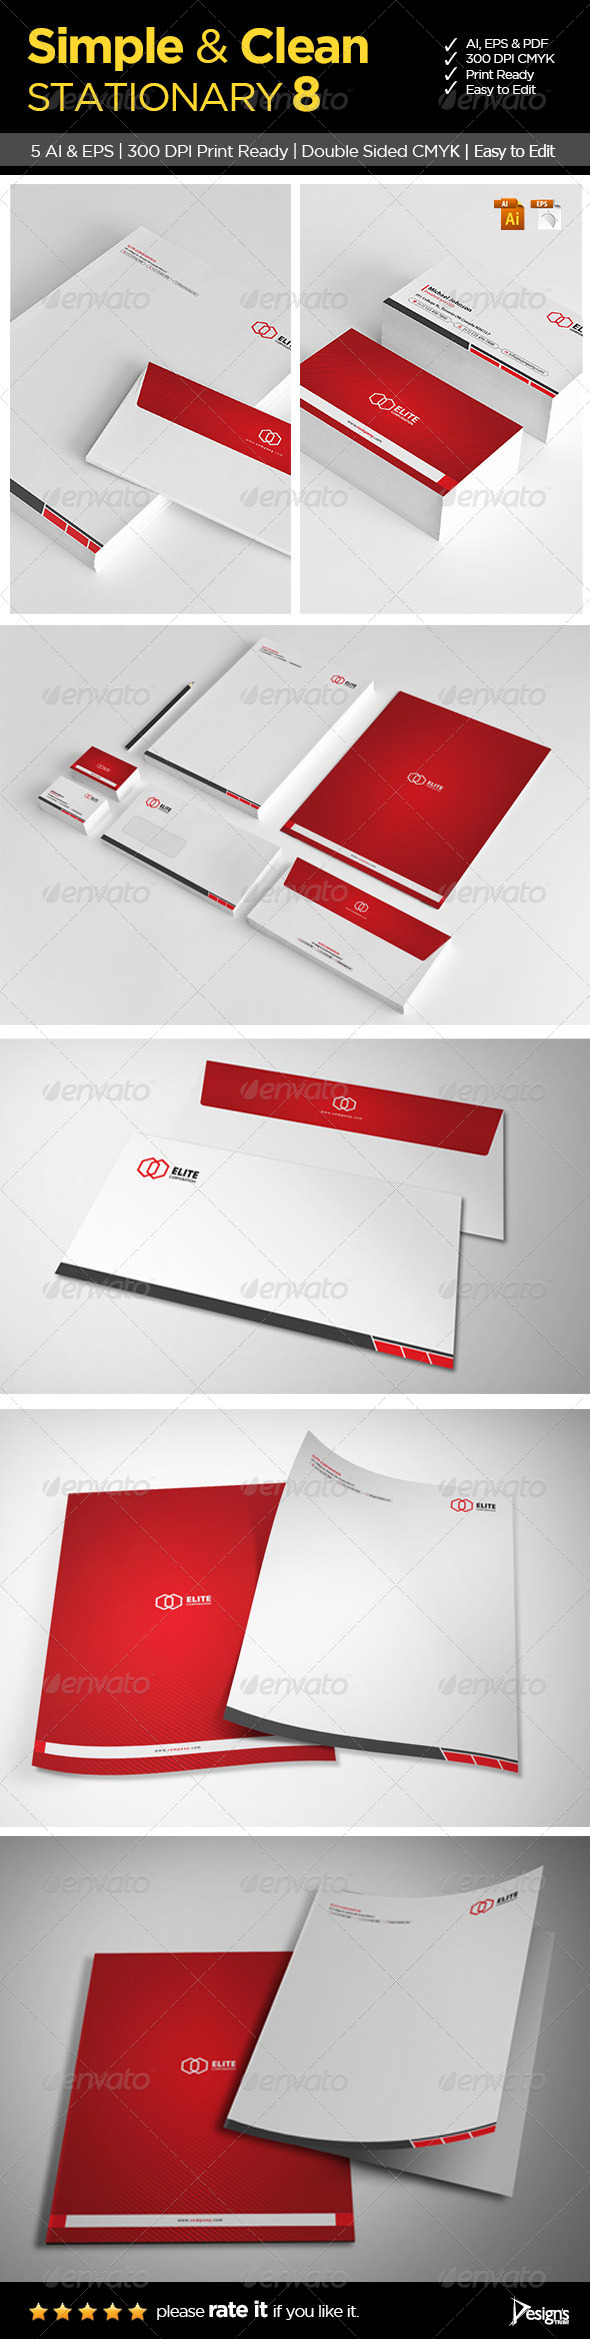 GraphicRiver Simple and Clean Stationary 8 6196261